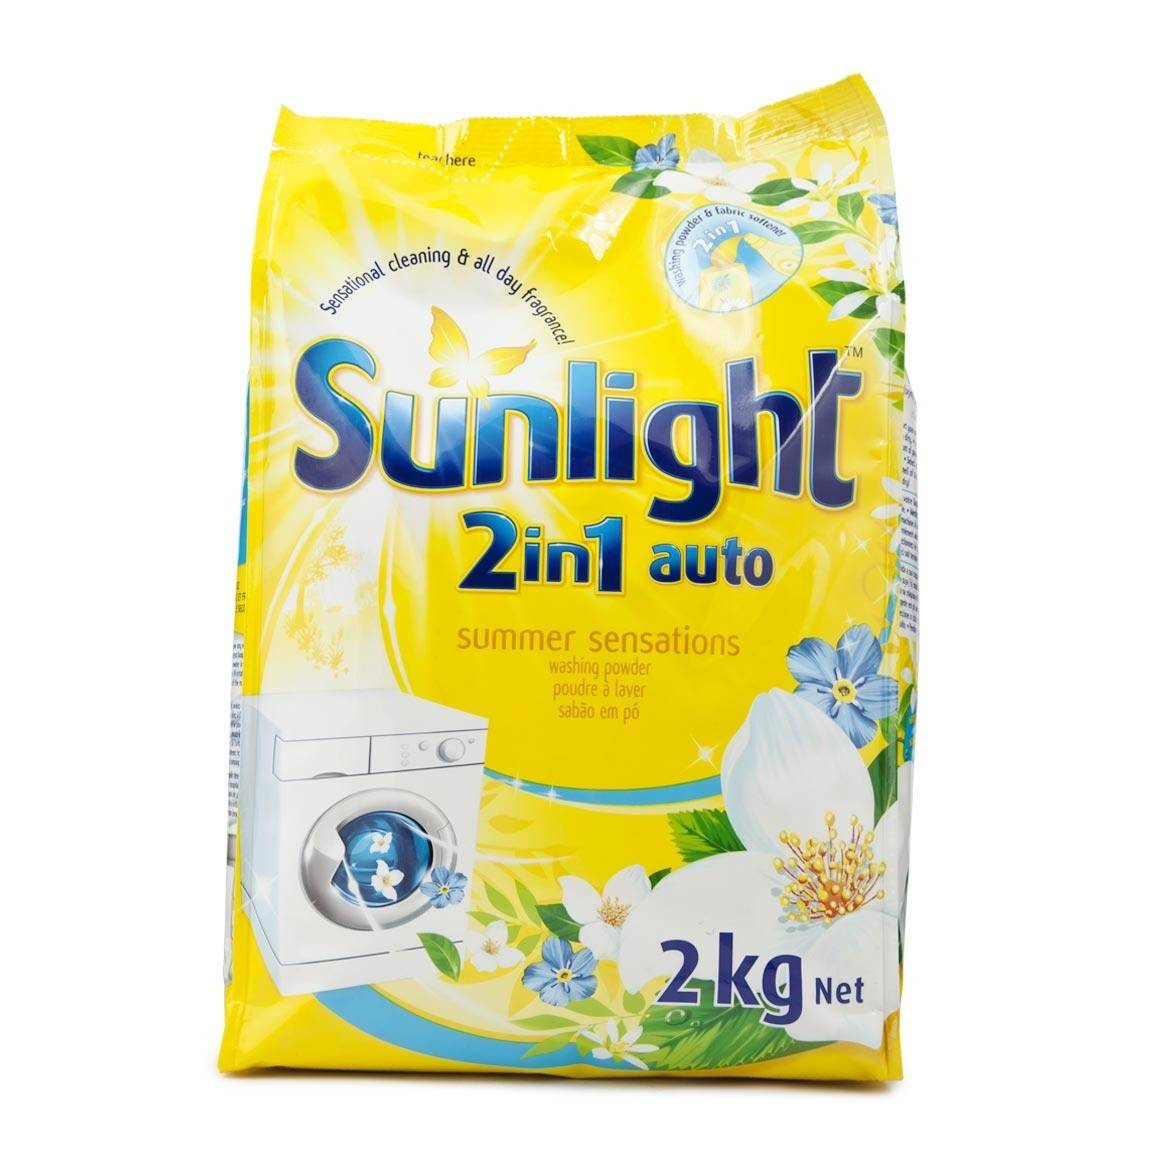 China largest manufacturer of washing powder